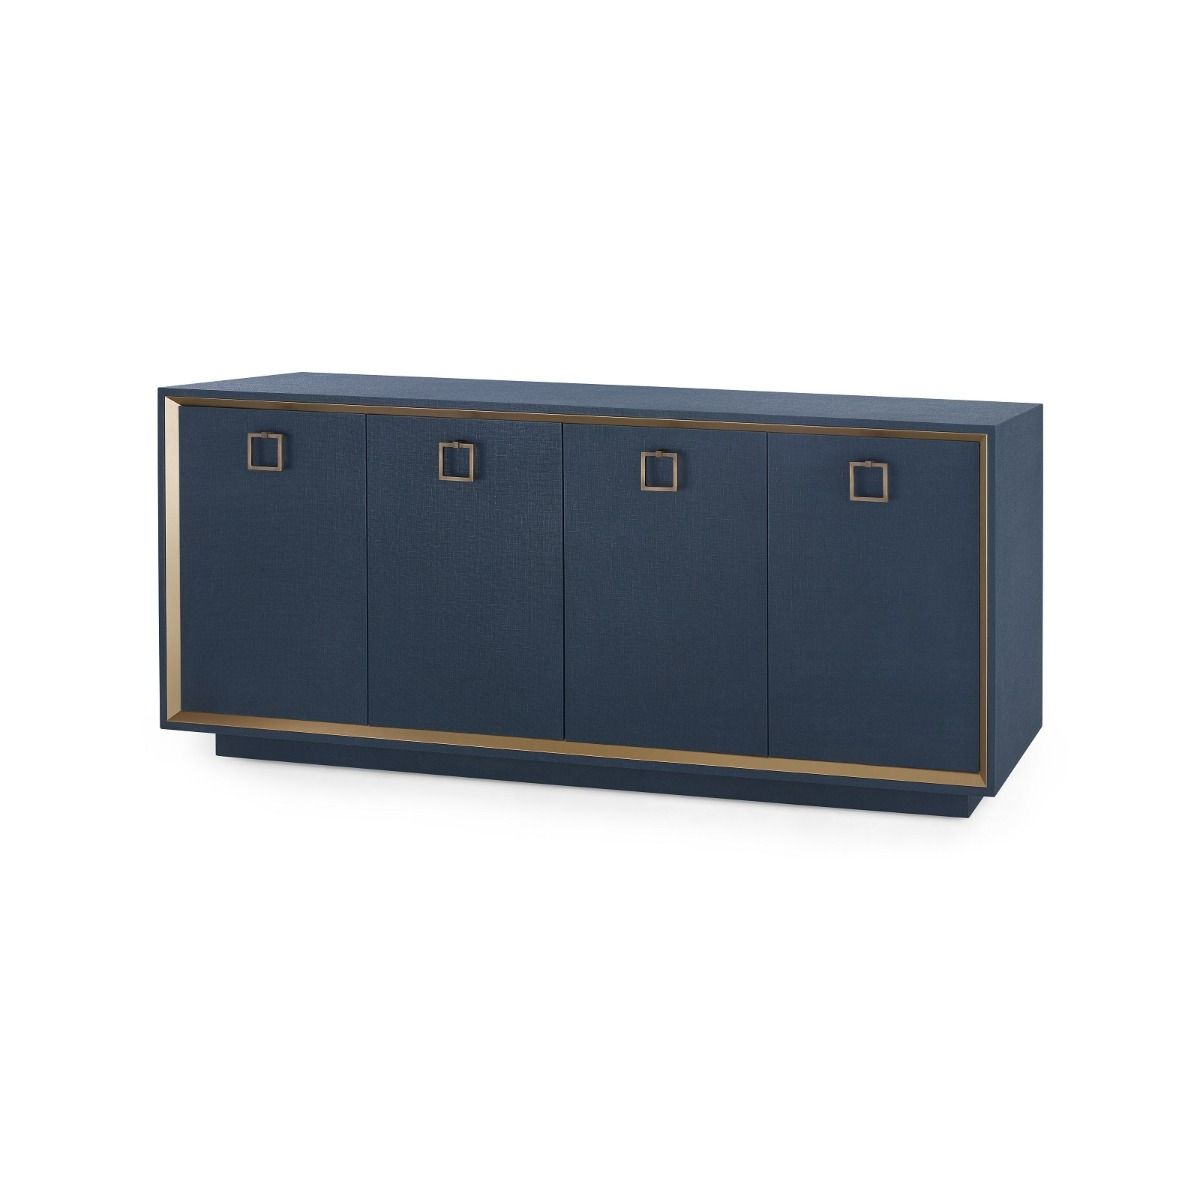 Bungalow 5 - ANSEL 4-DOOR CABINET, NAVY BLUE